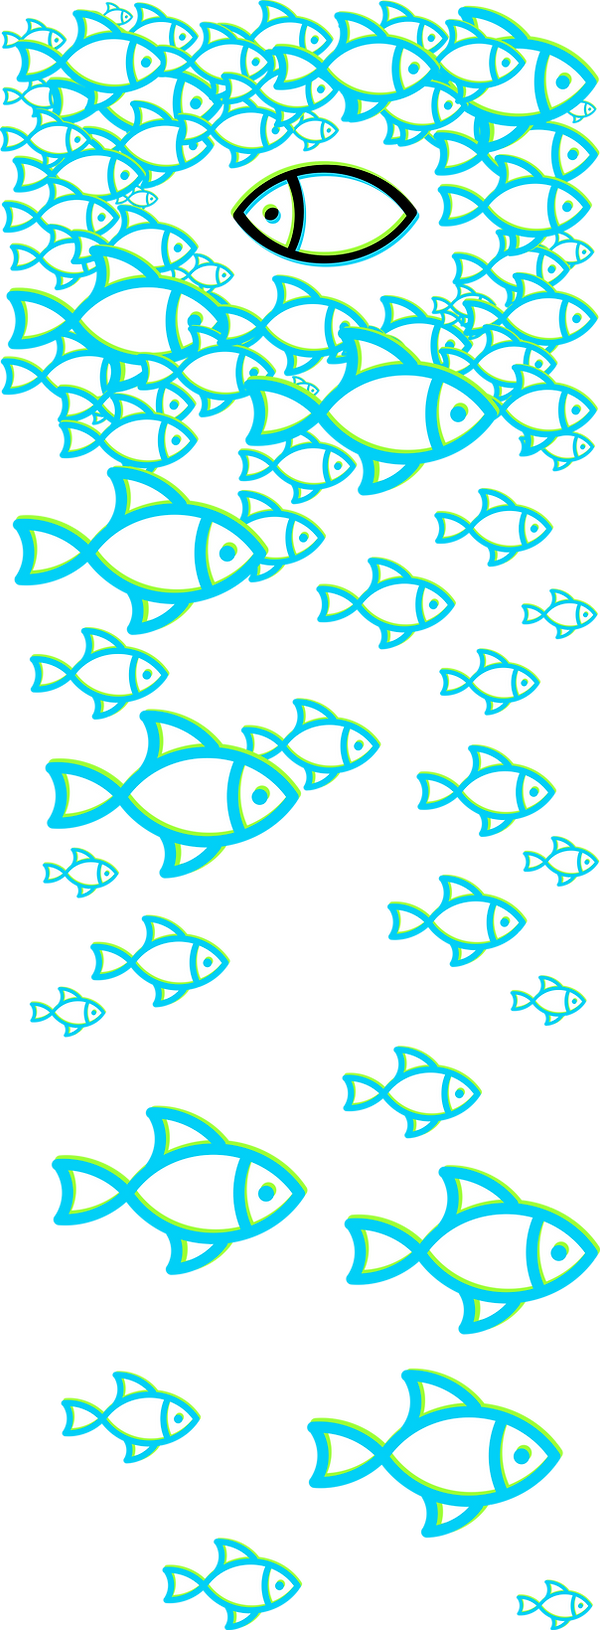 fwf FISCHE LANGBANNER LINKS.png